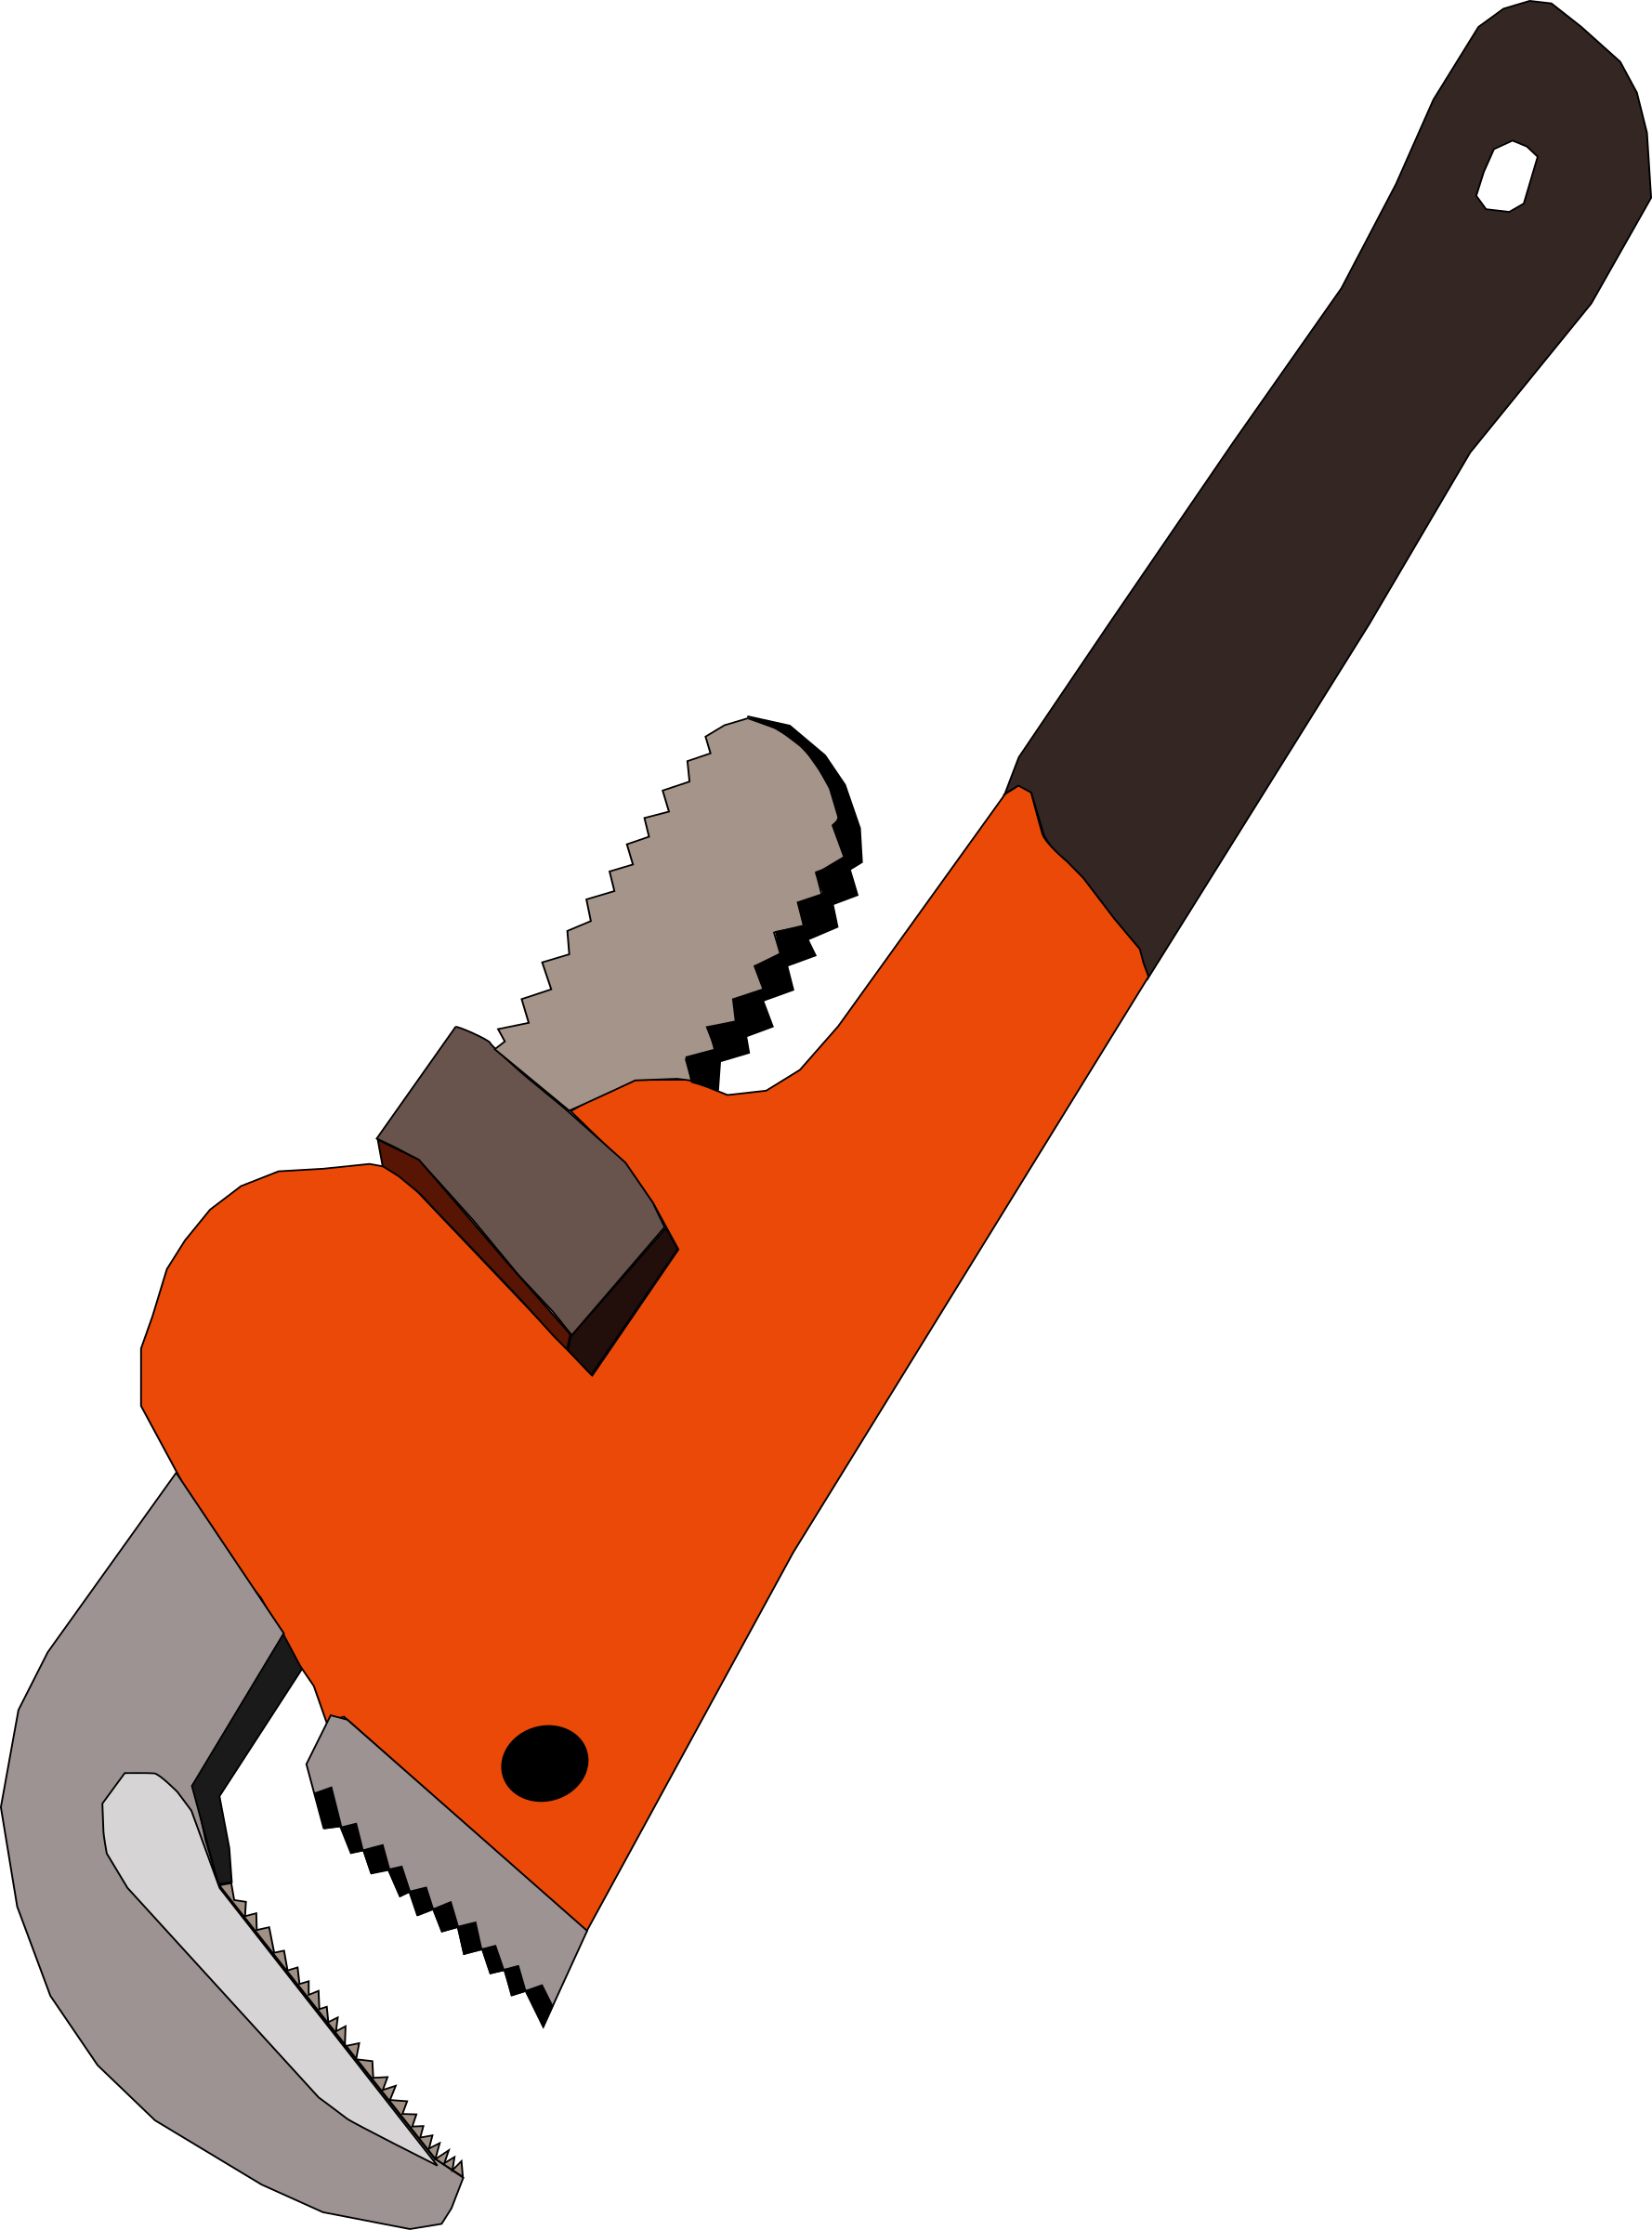 Pipe big image png. Clipart hand wrench